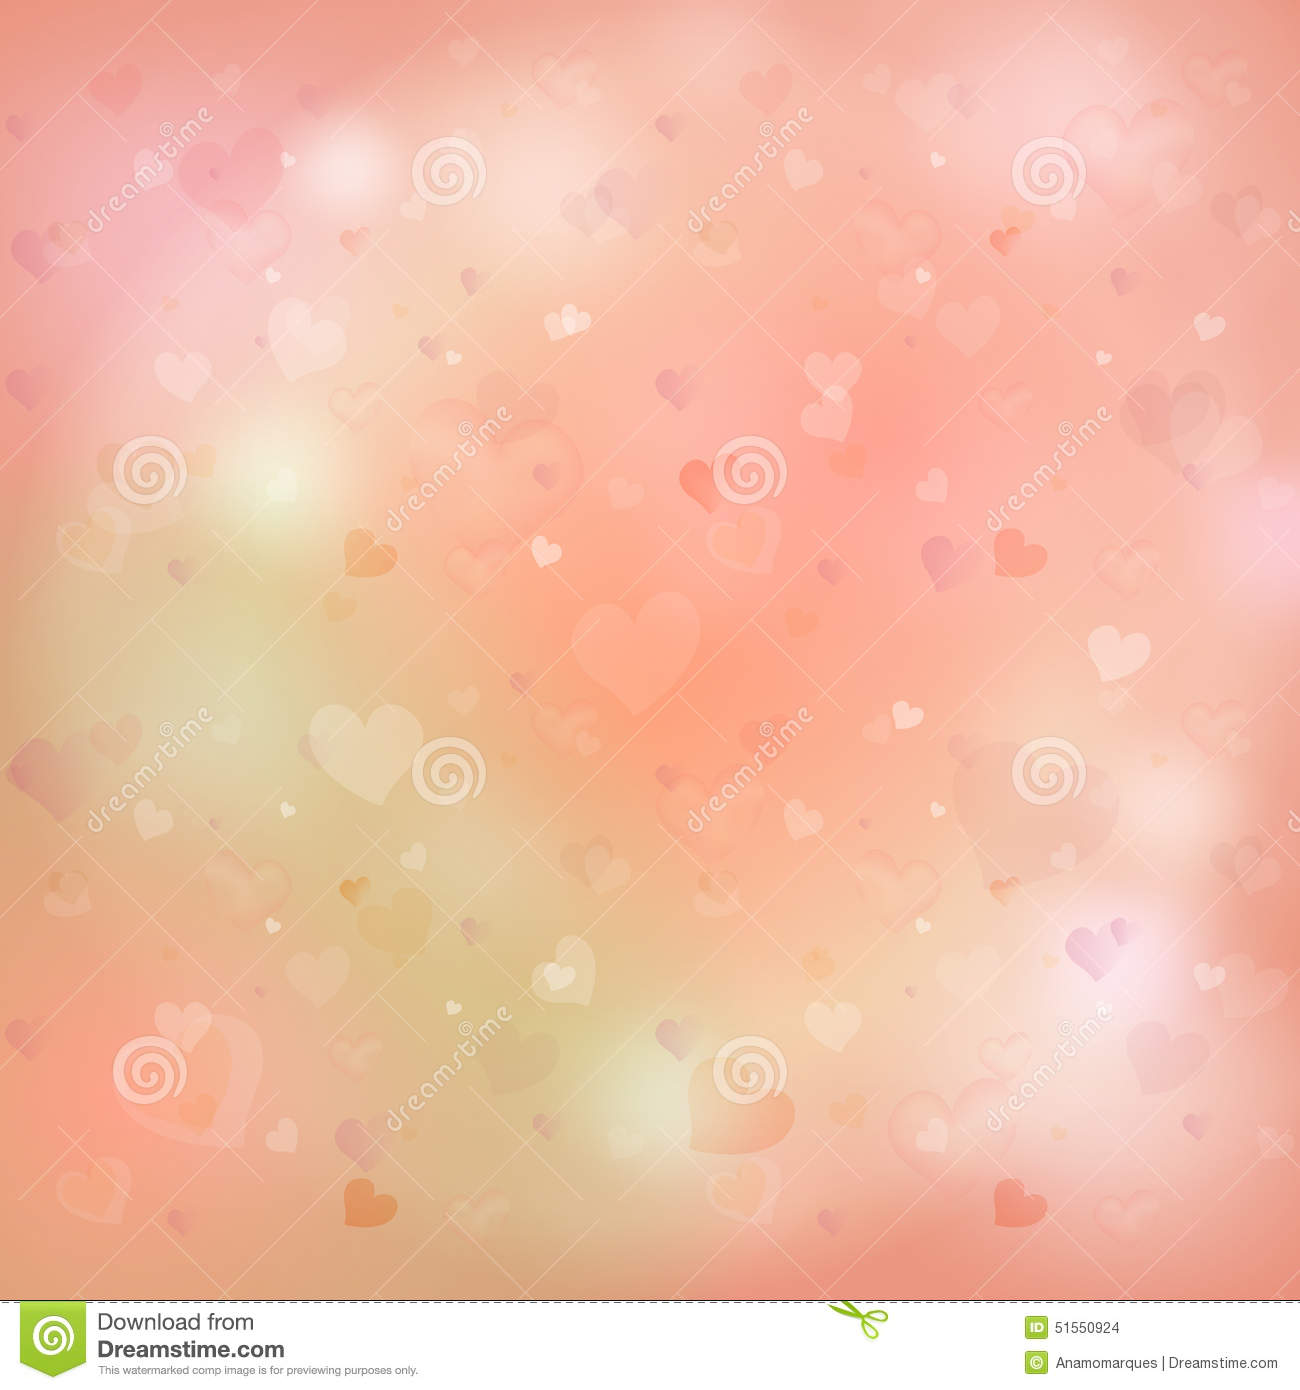 d763e73d424 Abstract Glow Soft Hearts for Valentines day Background Design.  Royalty-Free Illustration